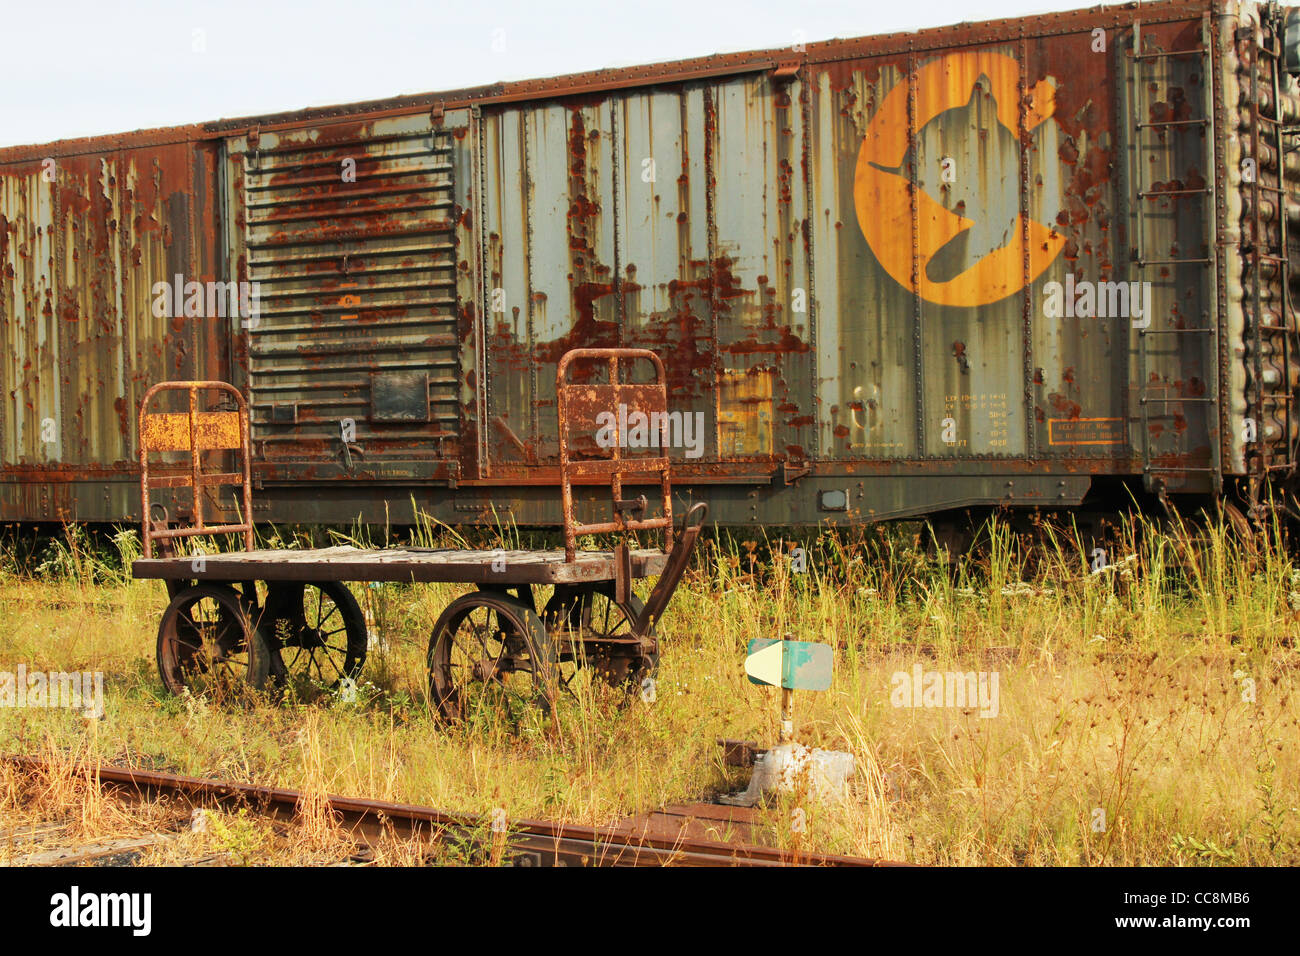 Baggage cart and freight car. - Stock Image